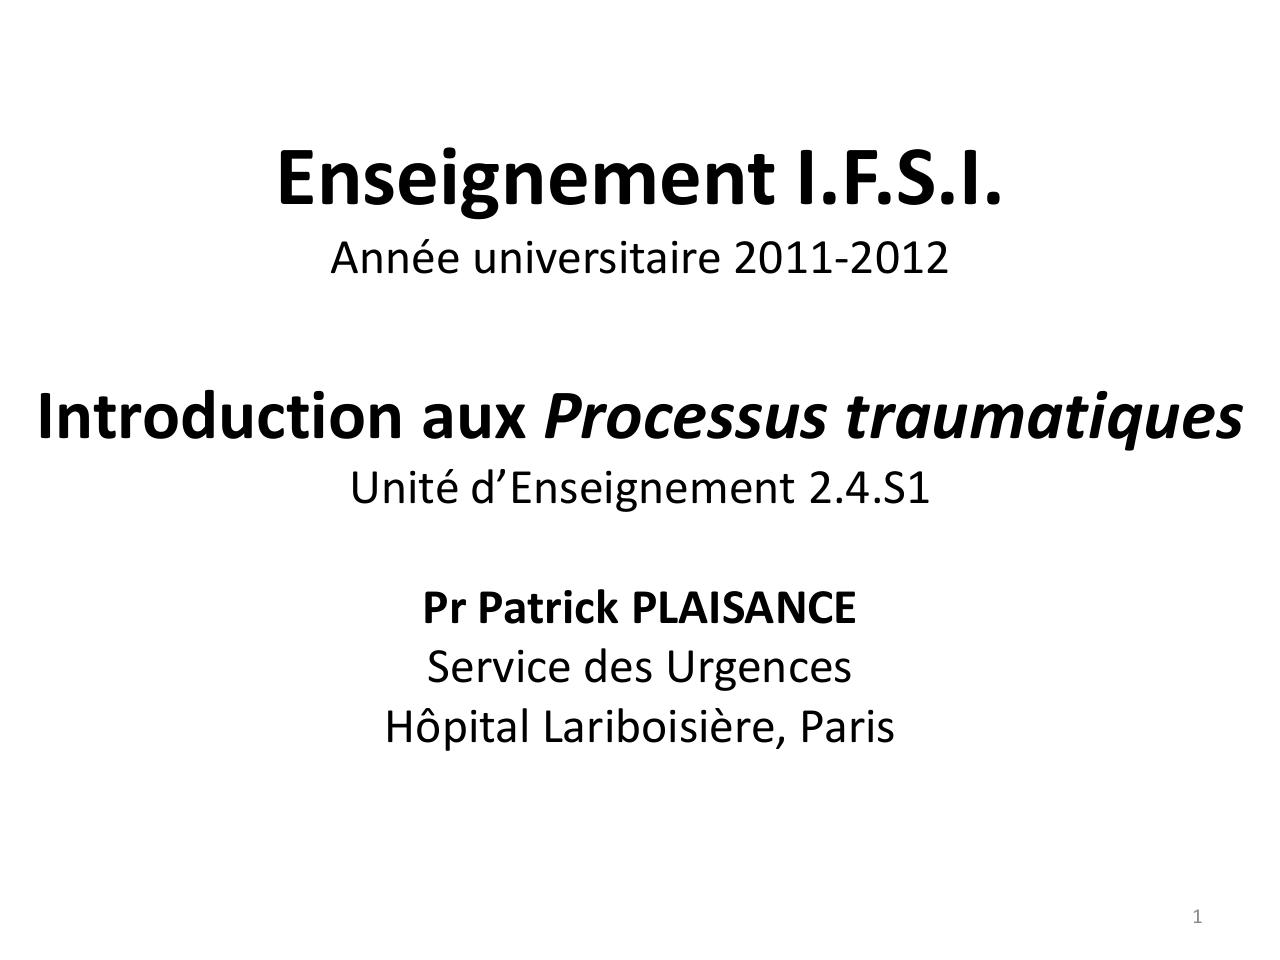 Cours IFSI - Introduction aux processus traumatiques.pdf - page 1/24